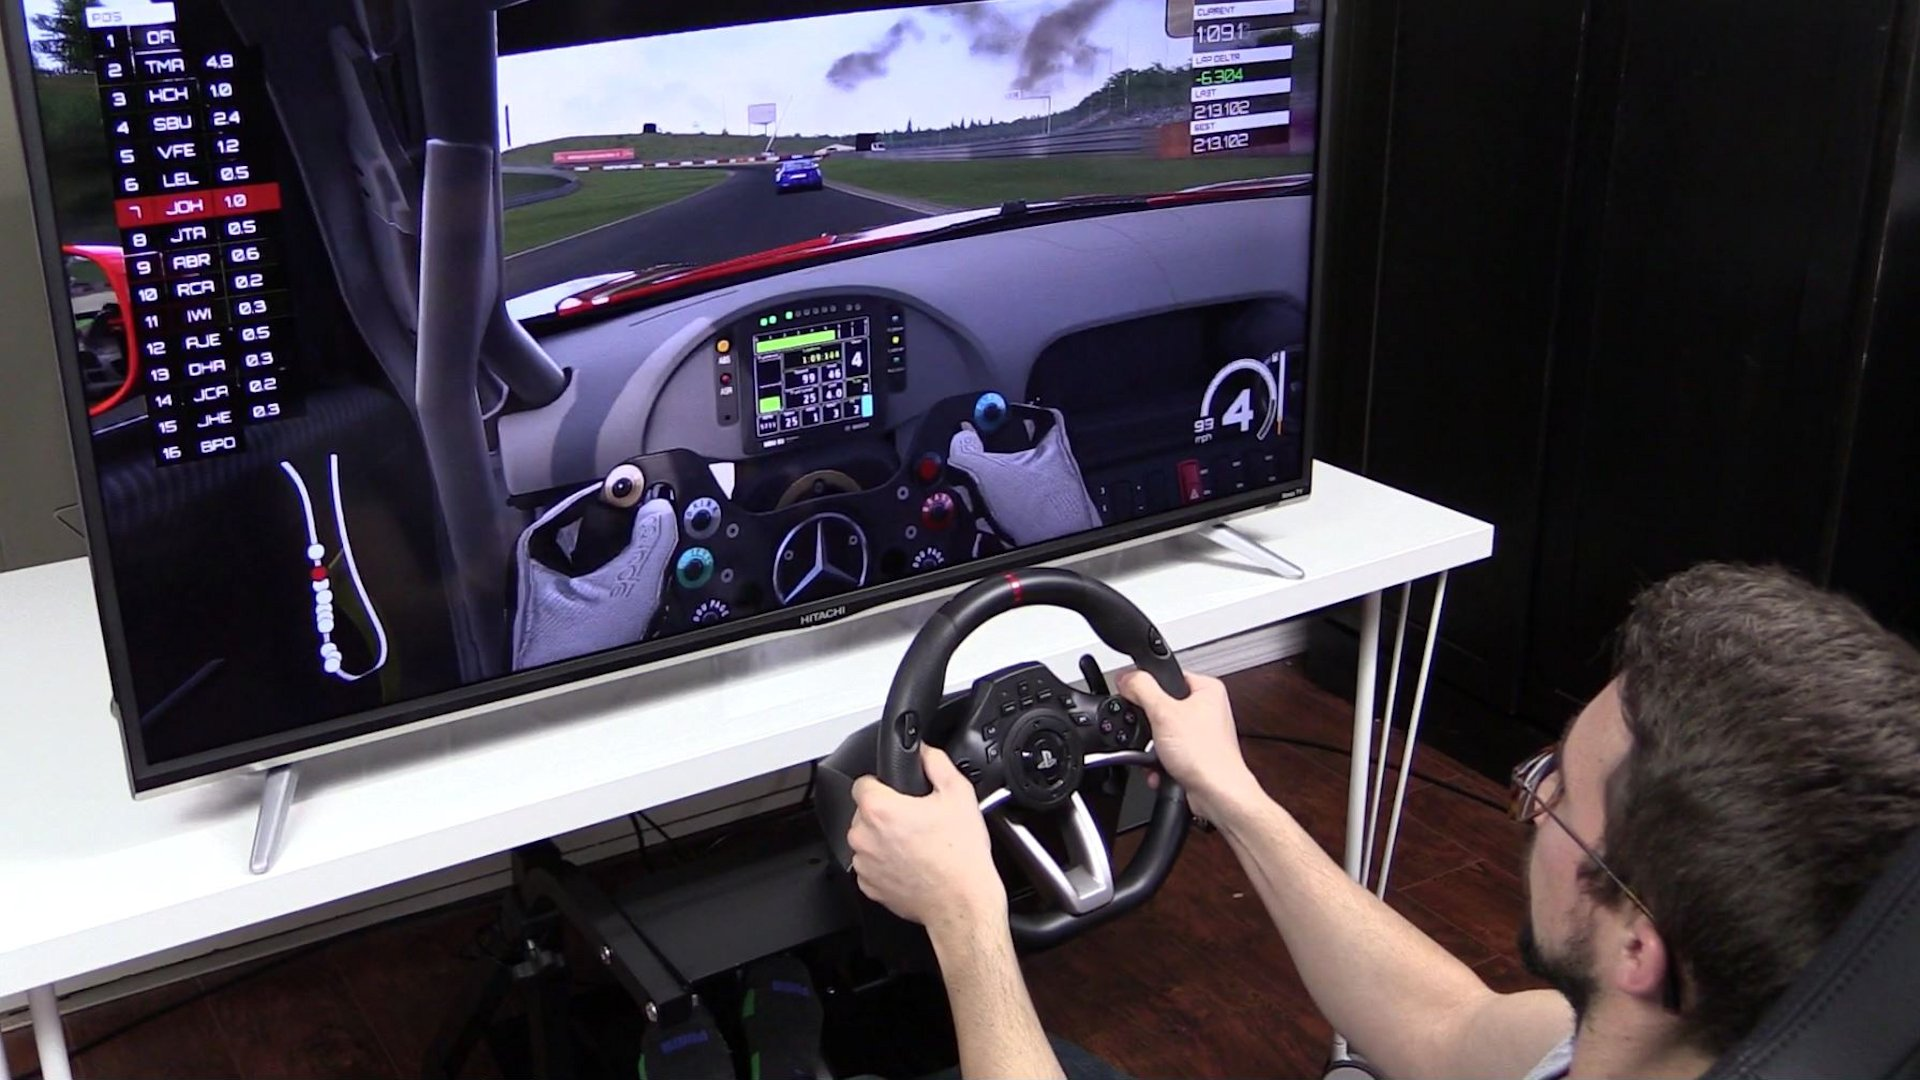 HORI Racing Wheel Apex Review - Is a $99 Wheel a Good Idea? - Inside